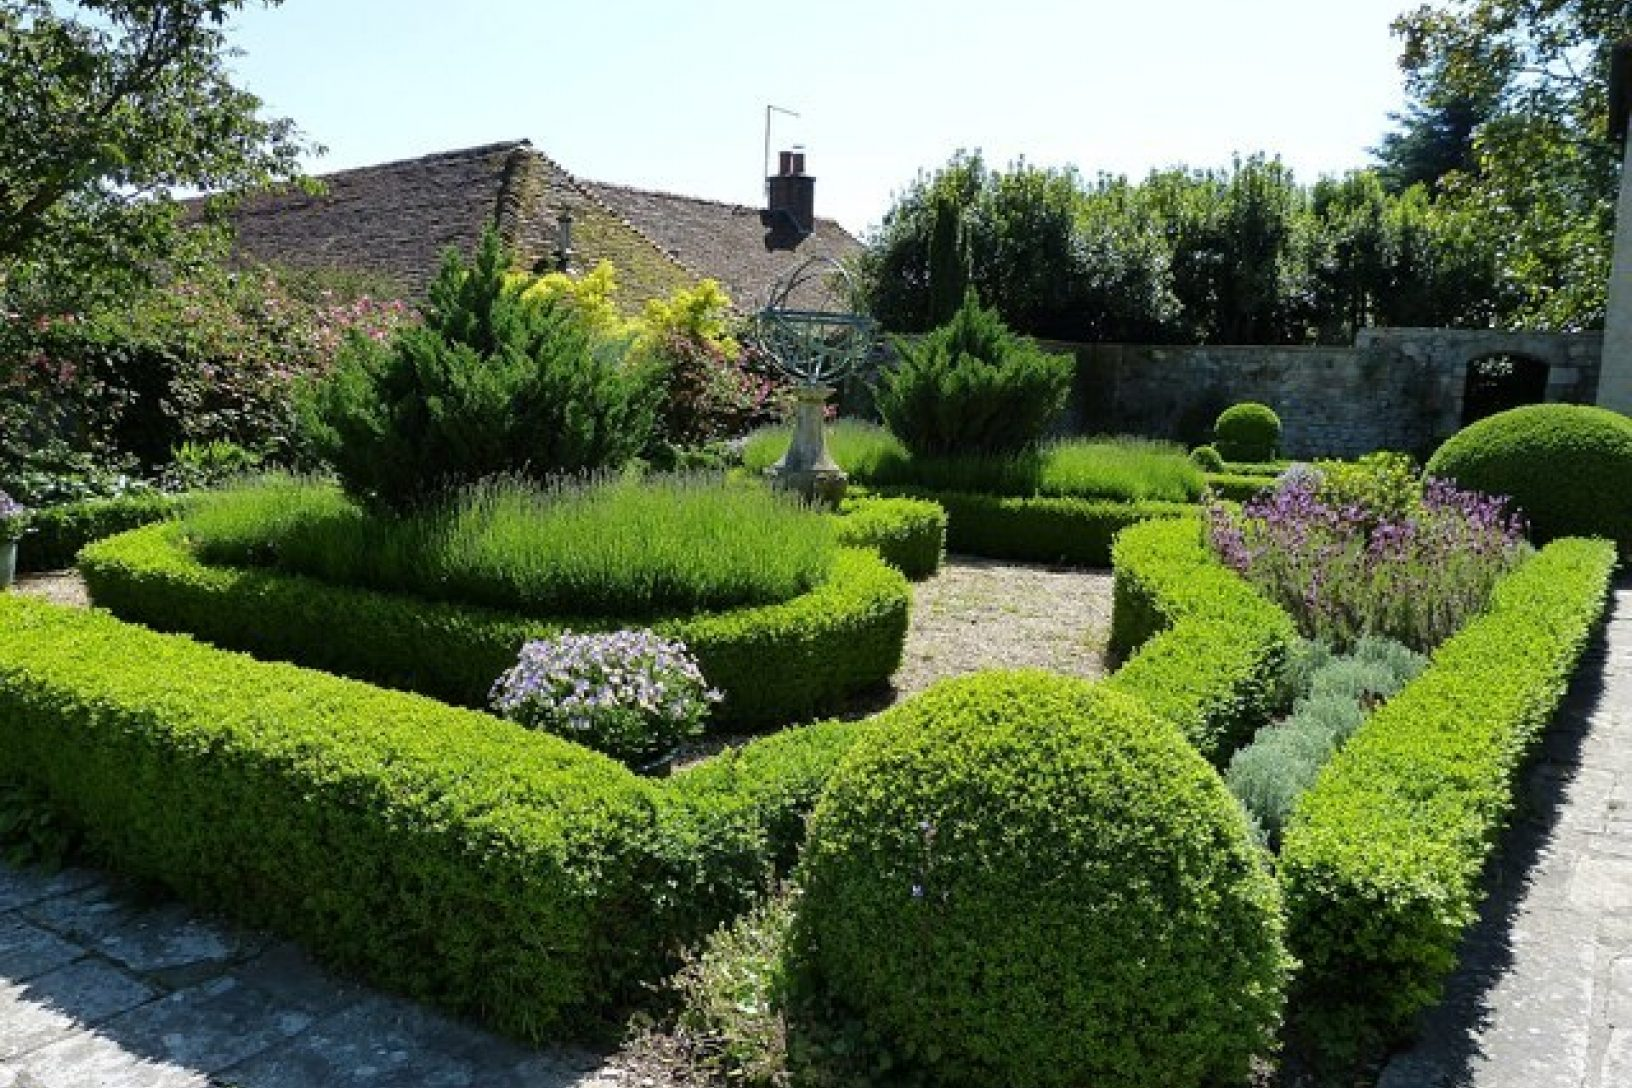 Box hedge topiary